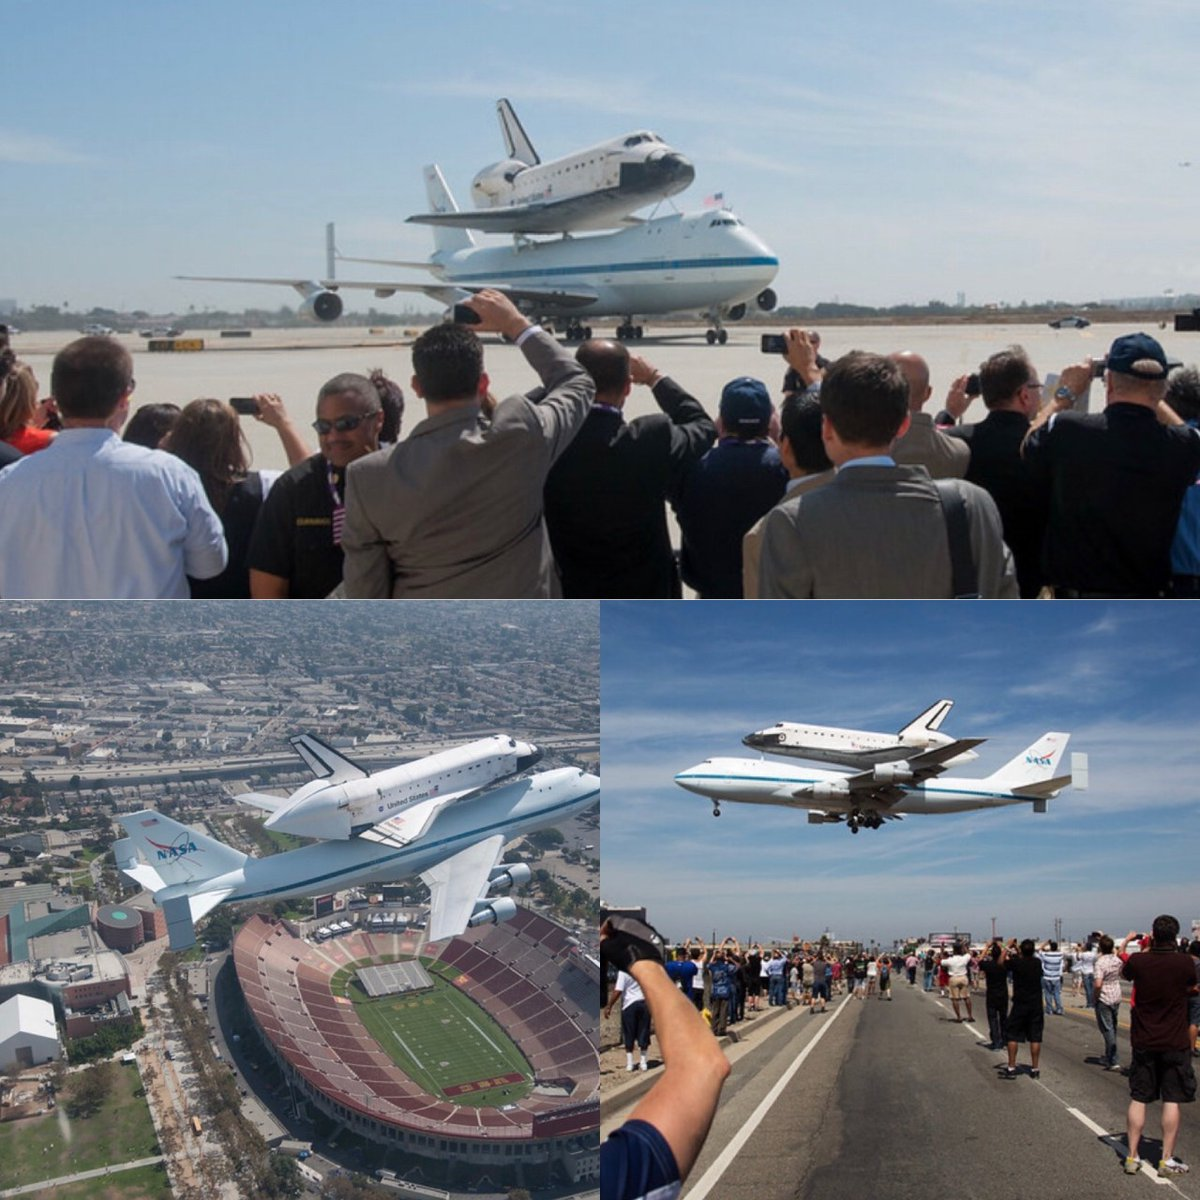 Wow! #Endeavour landed at LAX atop the Shuttle Carrier Aircraft (SCA) 8 yrs ago after a busy day of flying over CA! Where did YOU #SpotTheShuttle? Share your pics and tag us! #Mission26 #timeflies #onthisday #otd #partofhistory @NASA @NASAJPL @flyLAXairport @VisitCA @lacoliseum https://t.co/0OCiDm692I